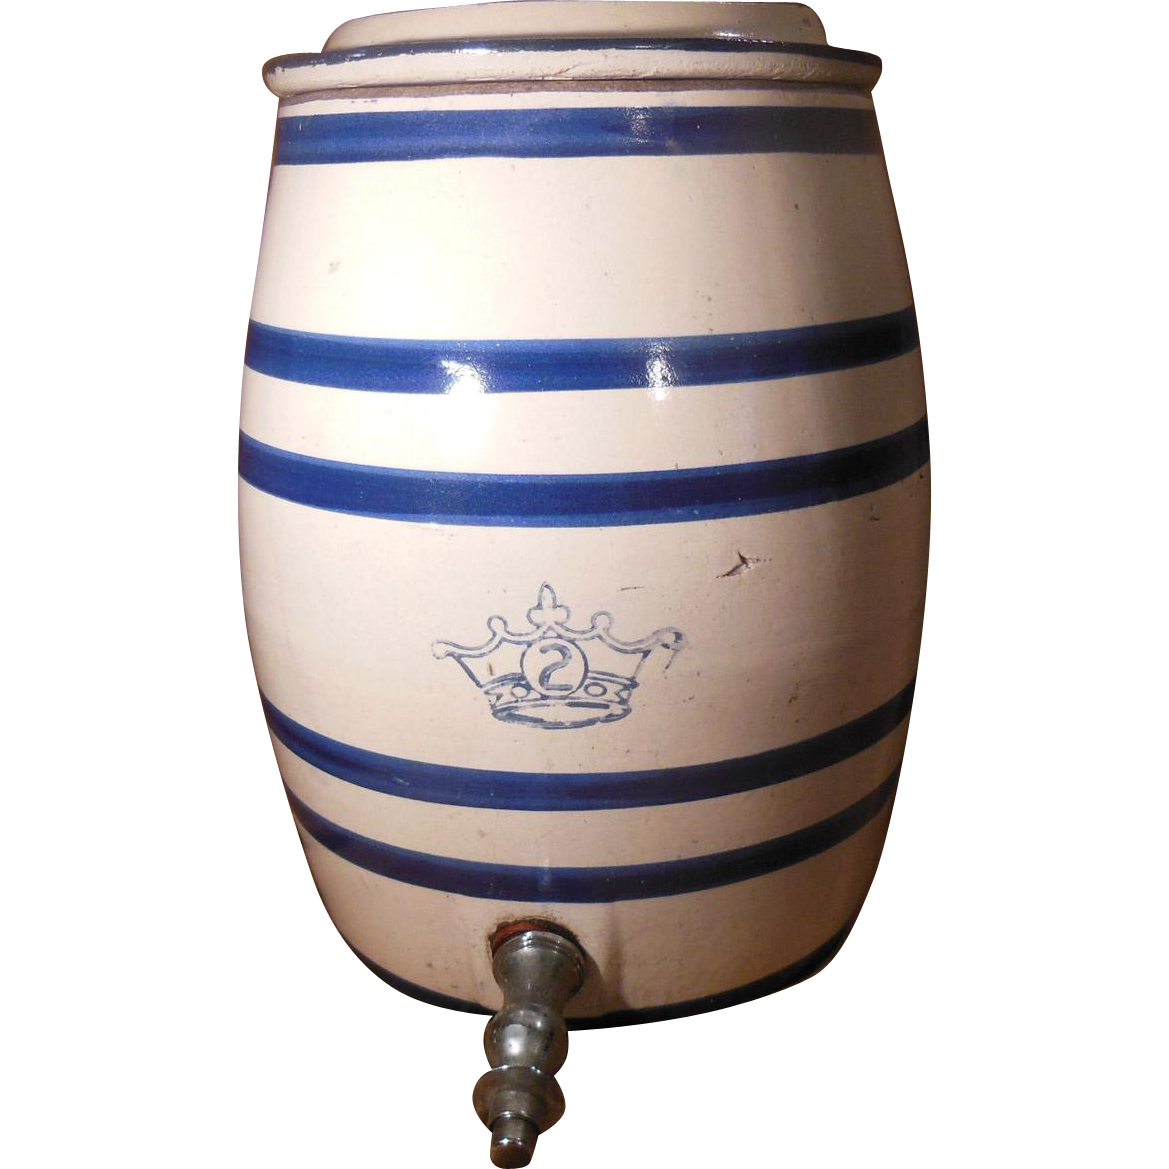 Vintage 2 Gallon Blue and White Stoneware Water Cooler Dispenser with Lid